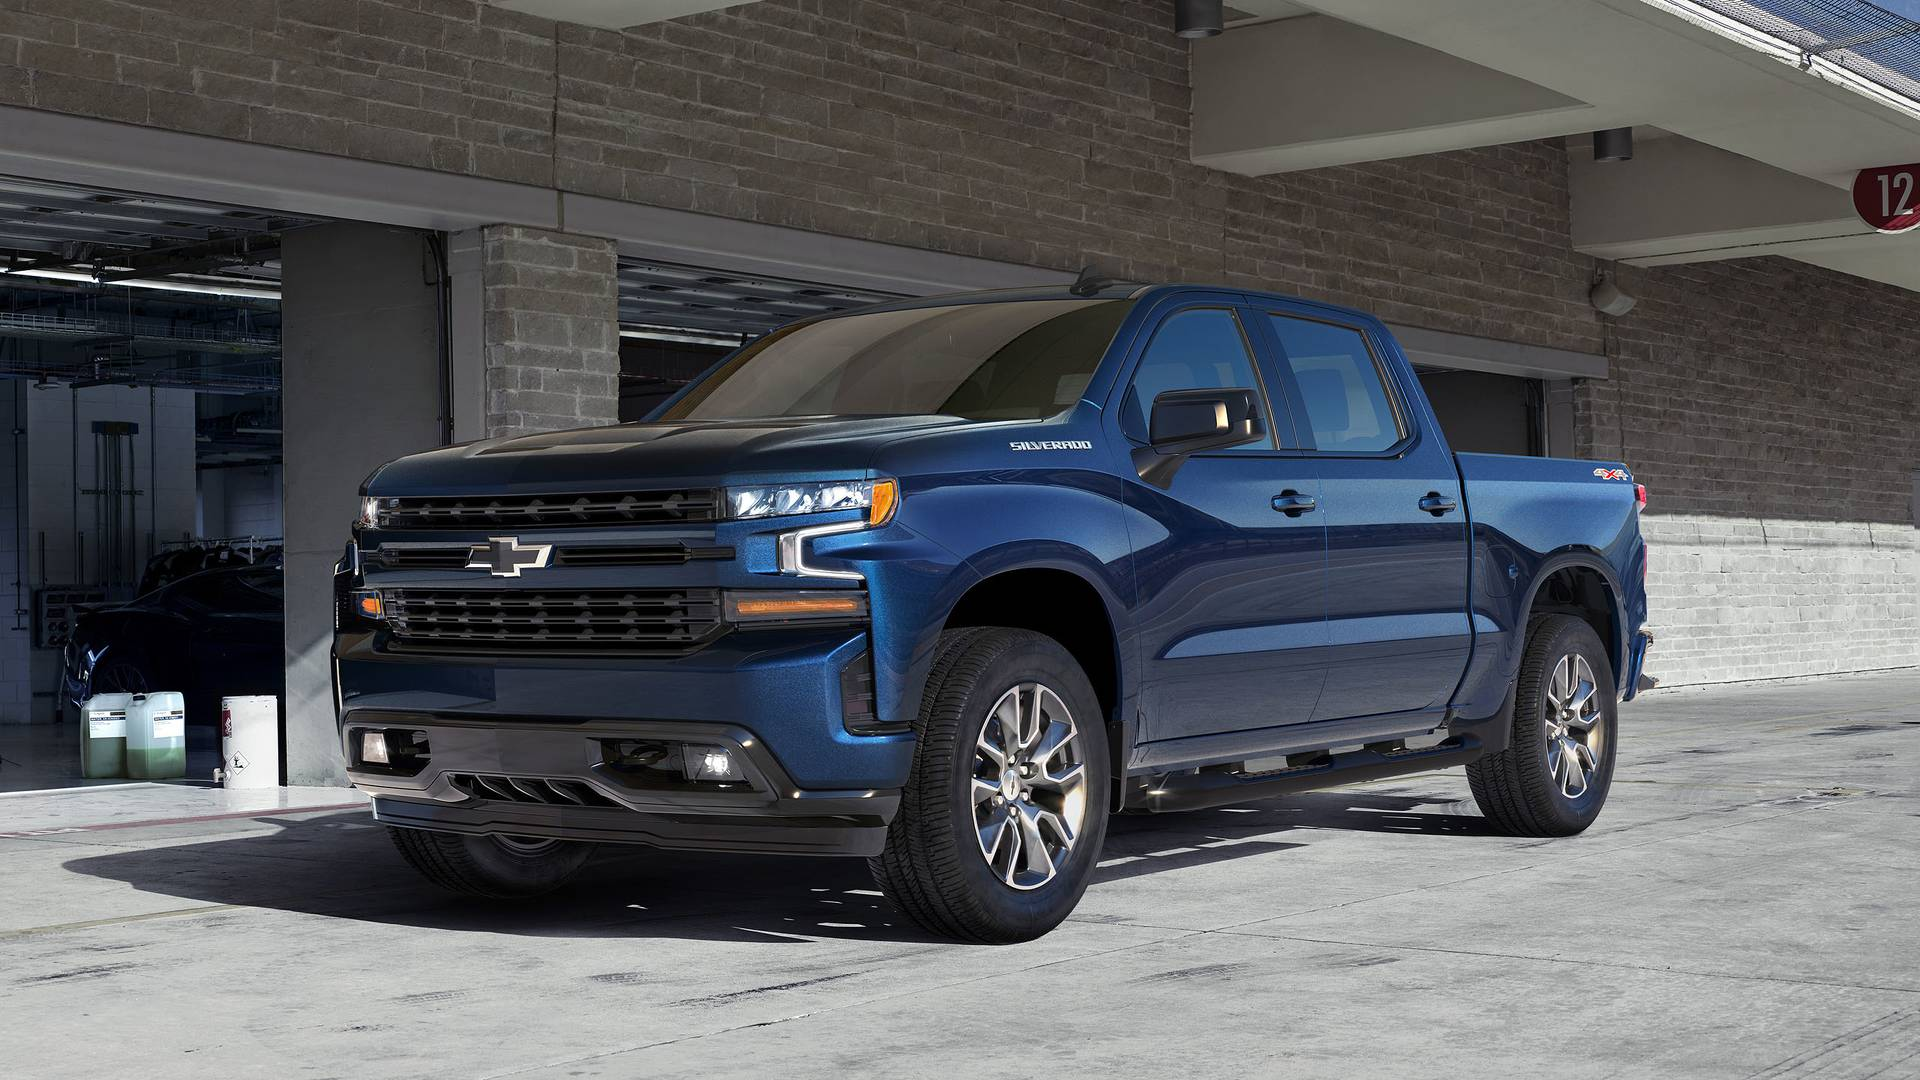 2019 Chevy Silverado Gets Cheaper Lt Trim Starts At 29 795